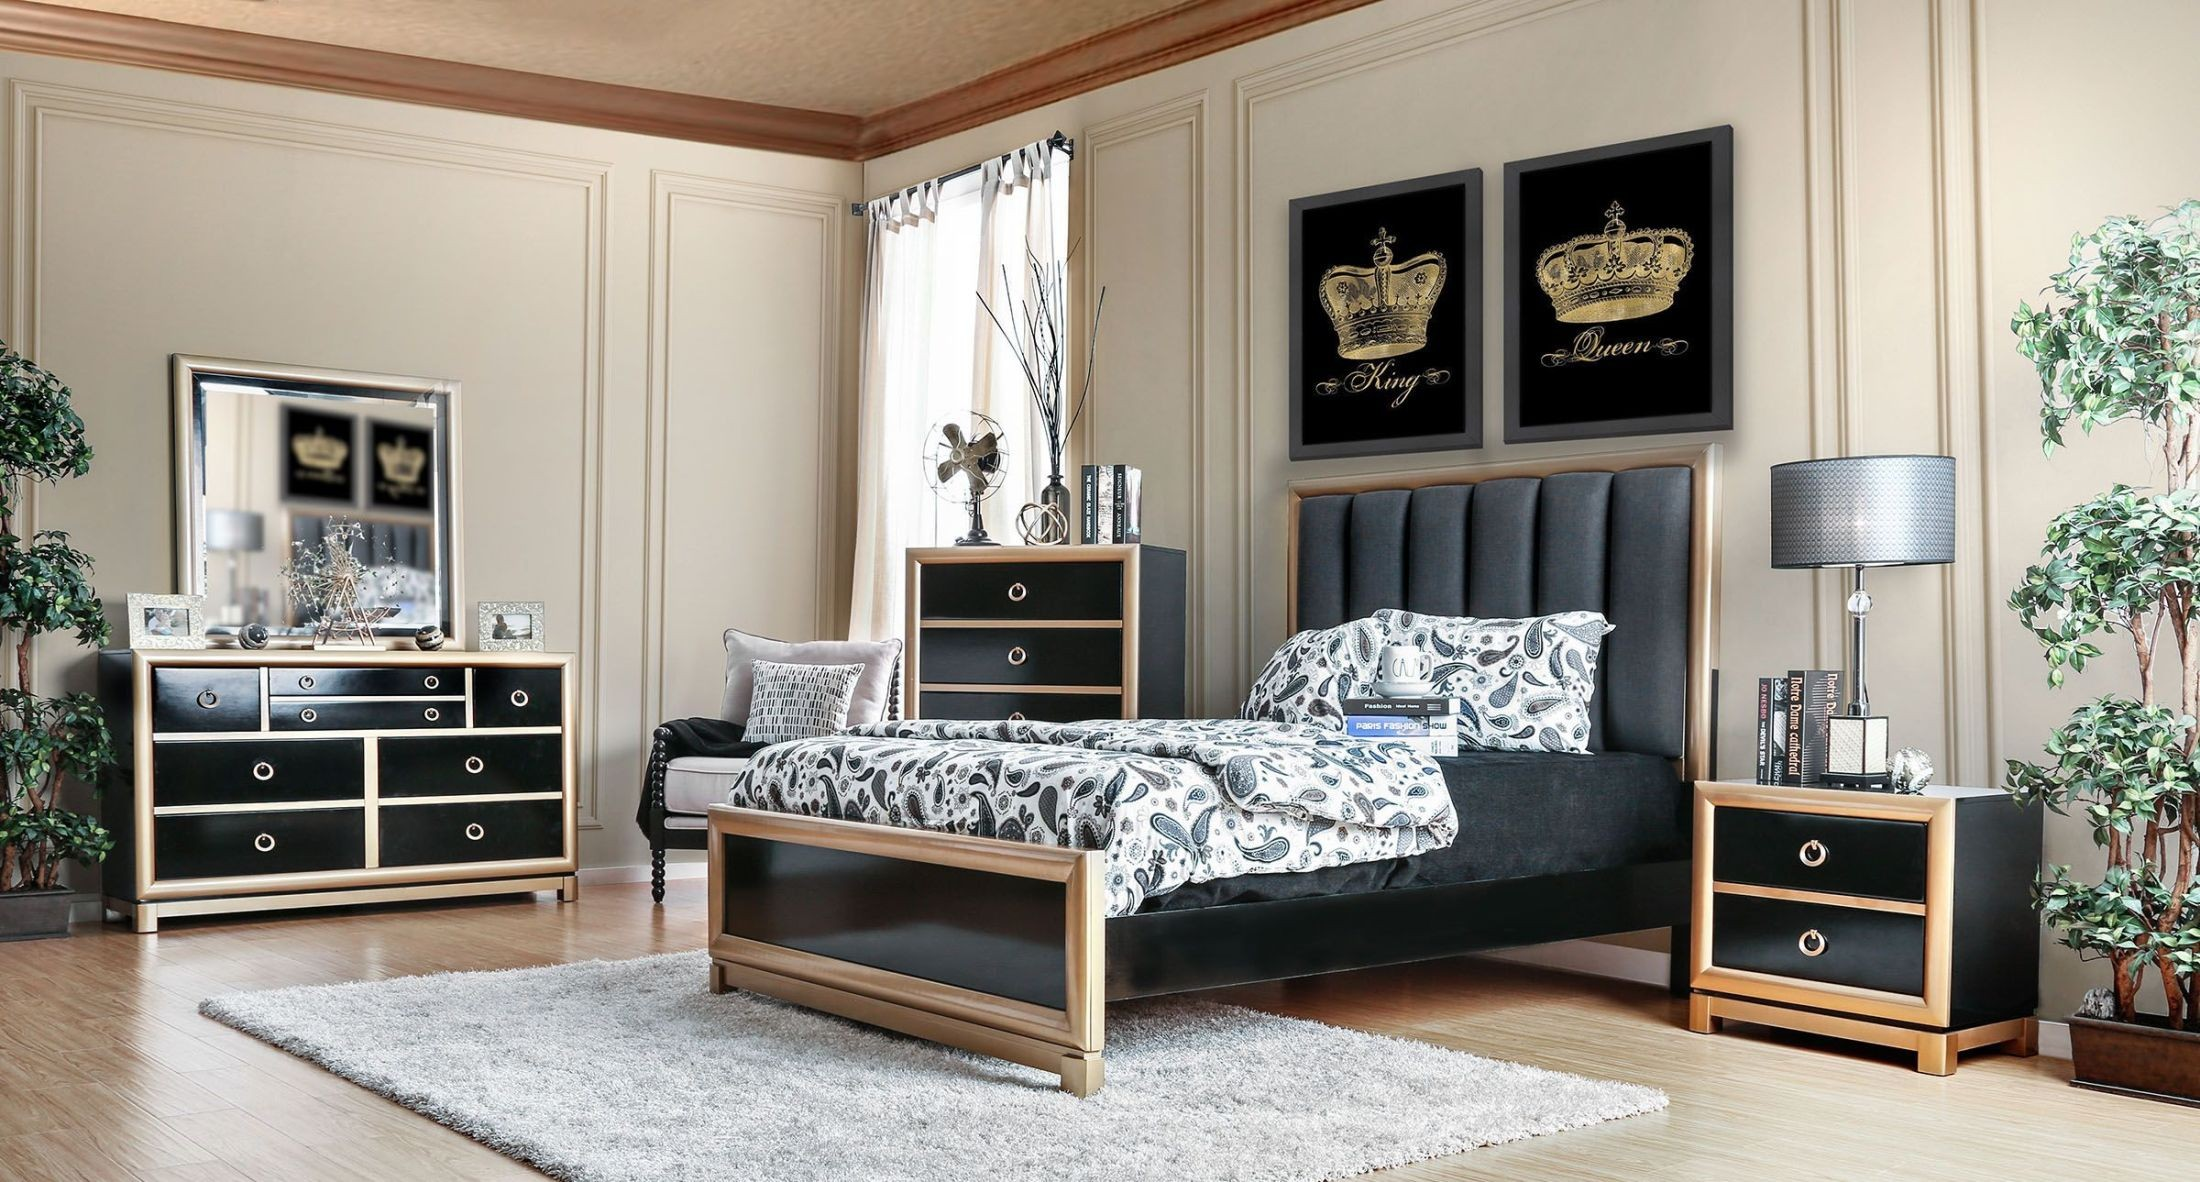 Braunfels Black And Gold Upholstered Panel Bedroom Set From Furniture Of America Coleman Furniture